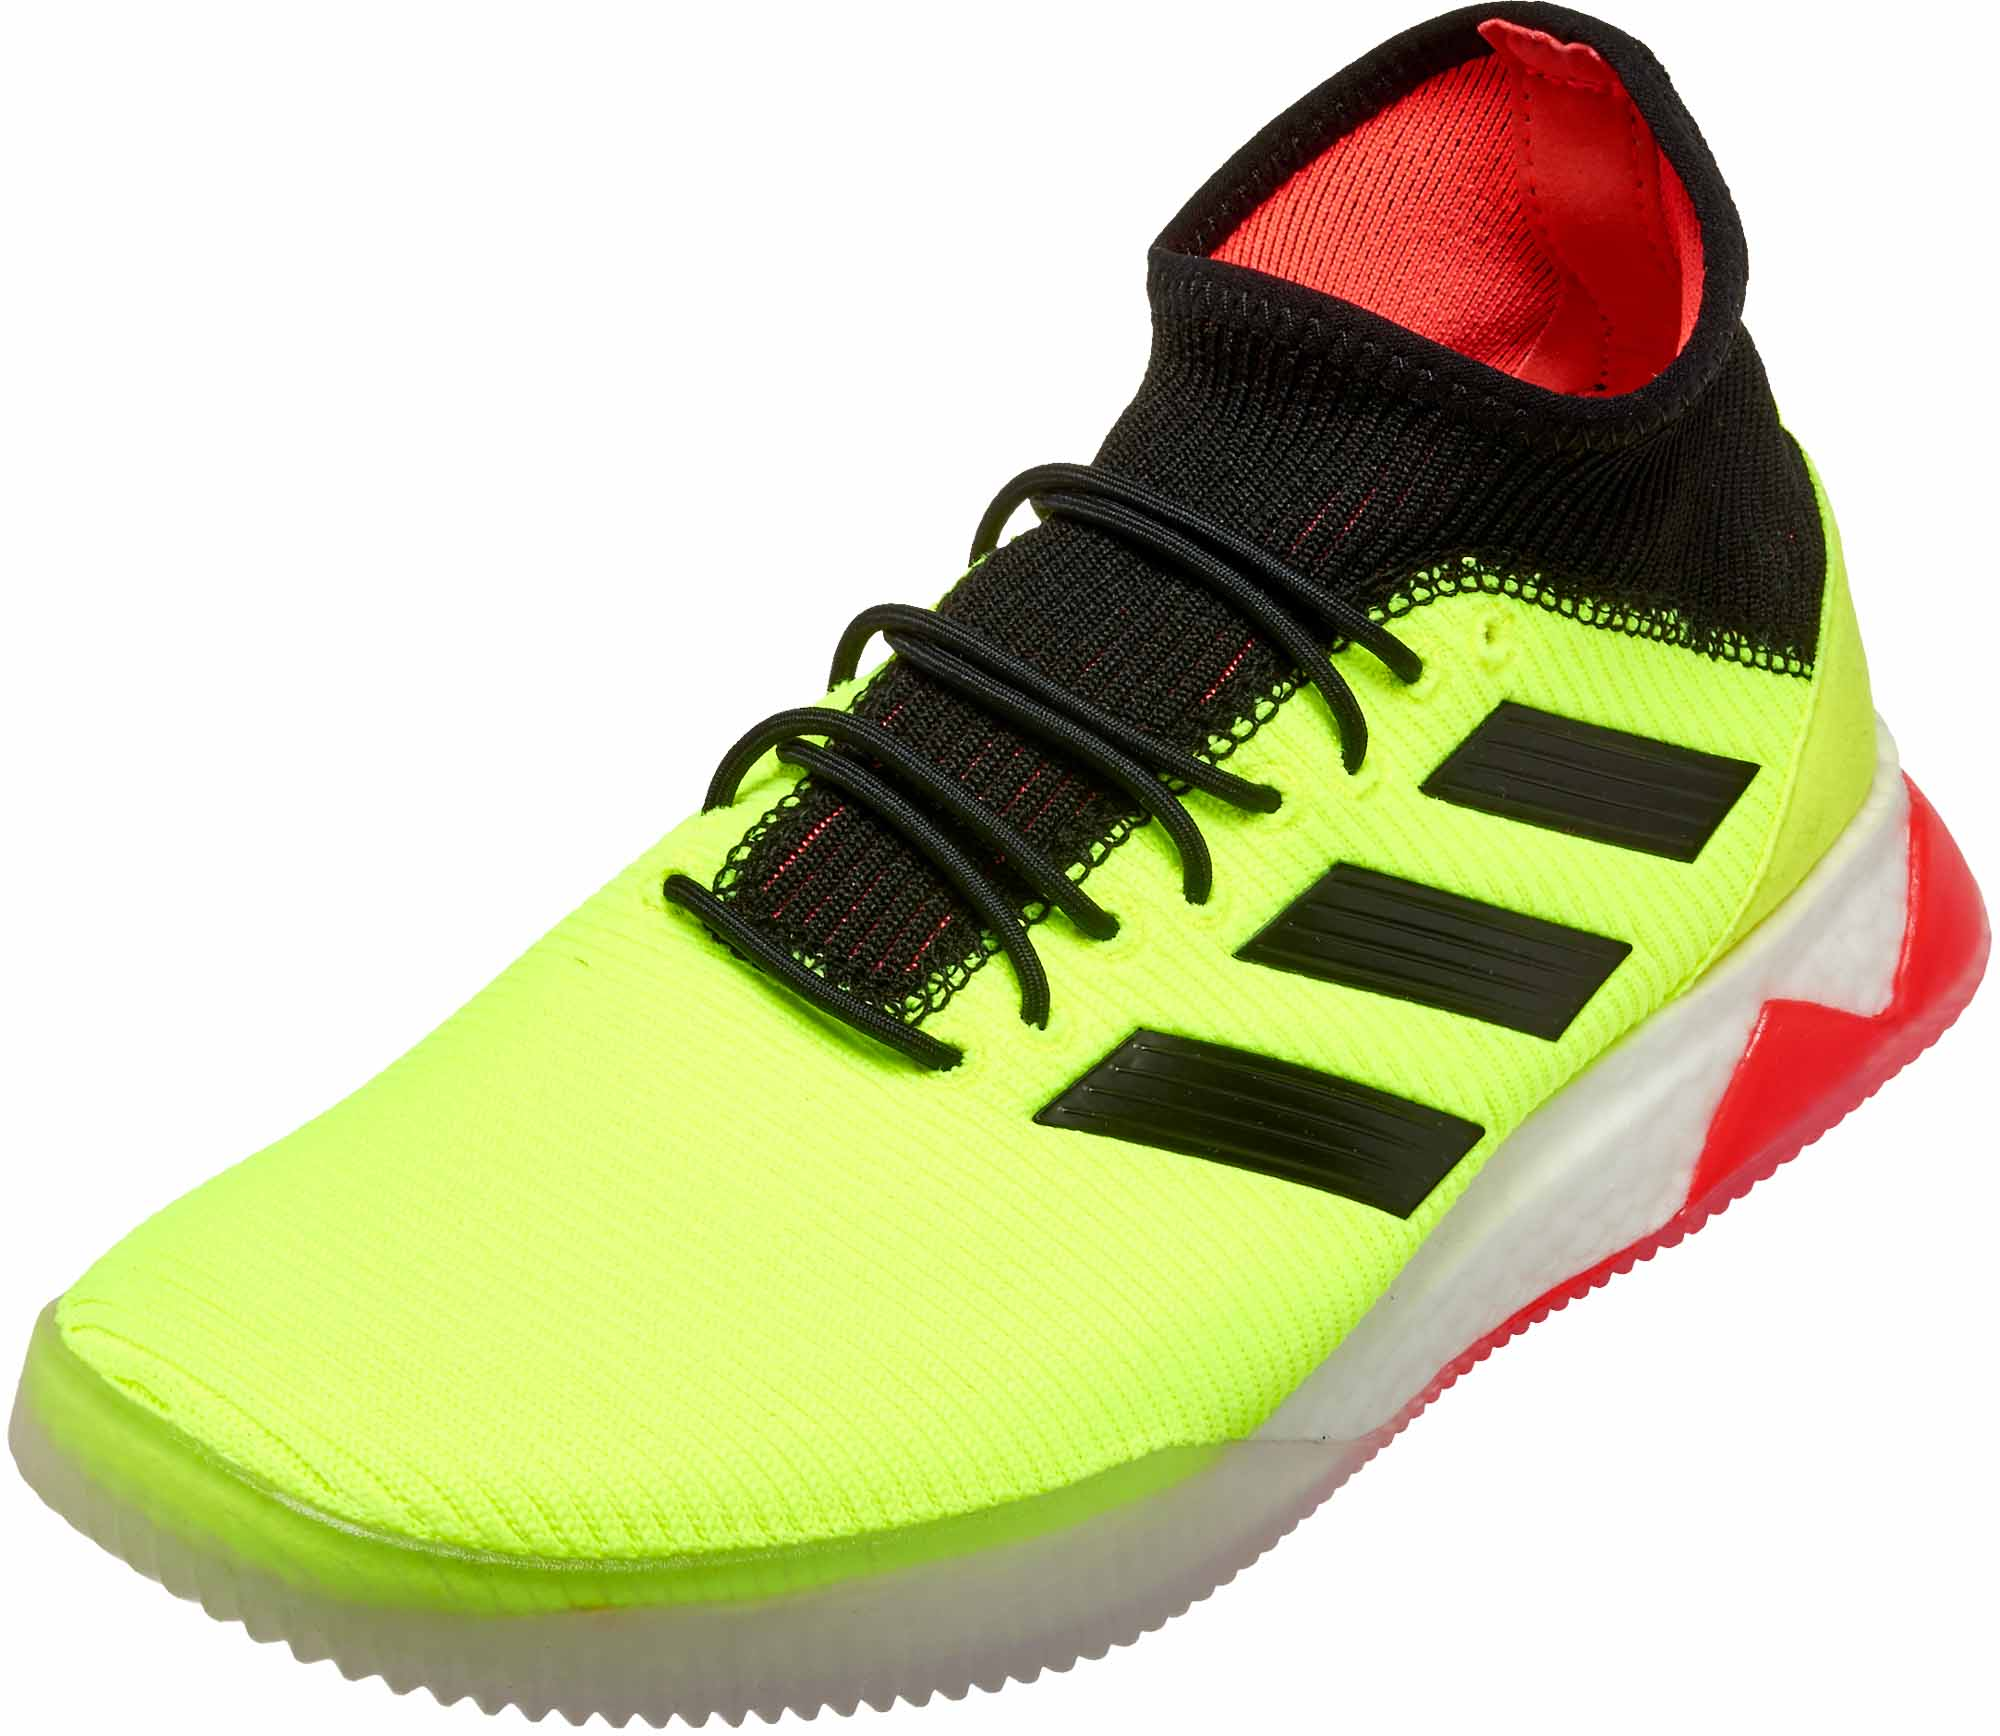 cheap for discount 06e35 21531 adidas Predator Tango 18.1 TR – Energy Mode